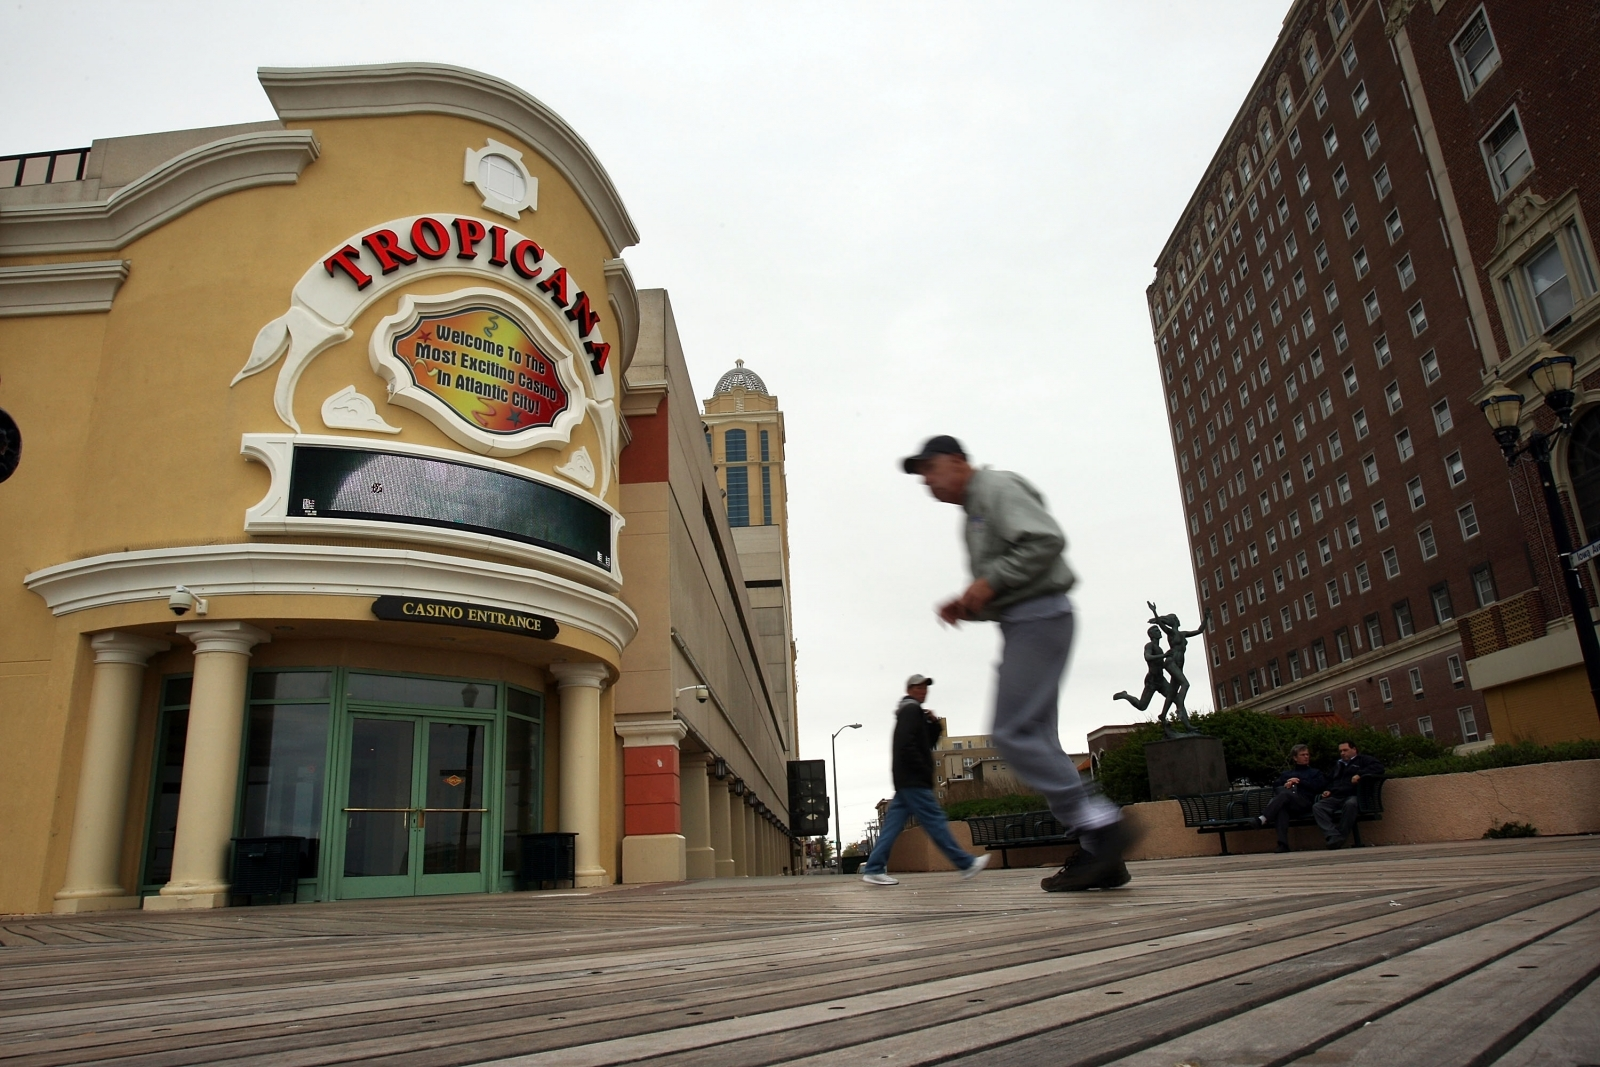 Tropicana Casino in Atlantic City, NJ